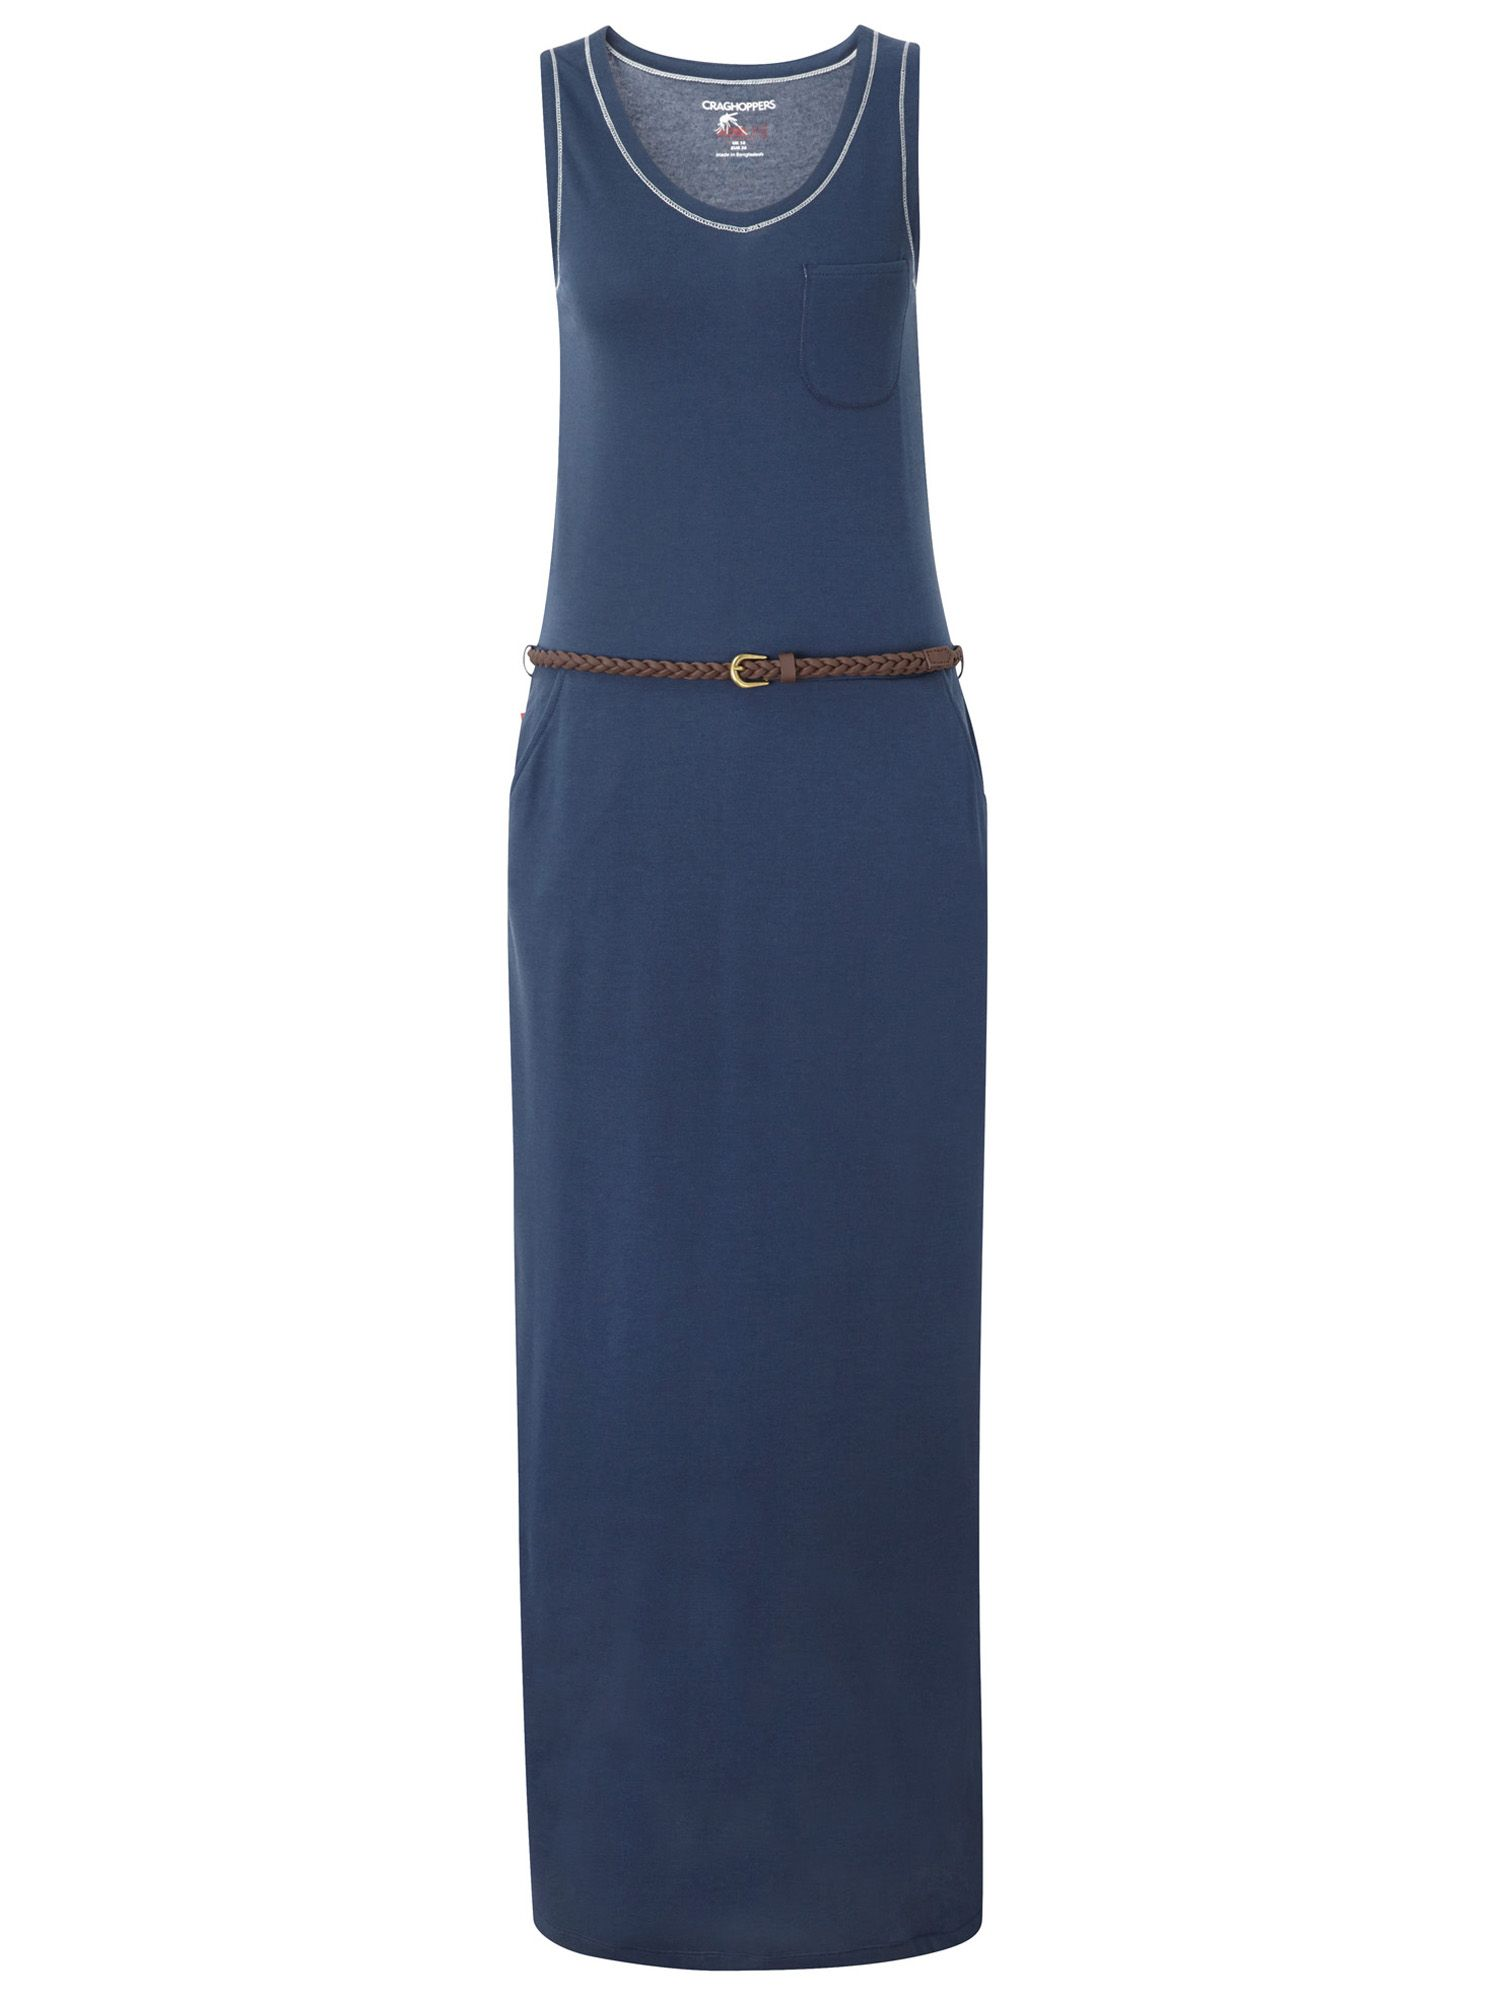 Craghoppers Craghoppers NosiLife Aimee Maxidress, Navy